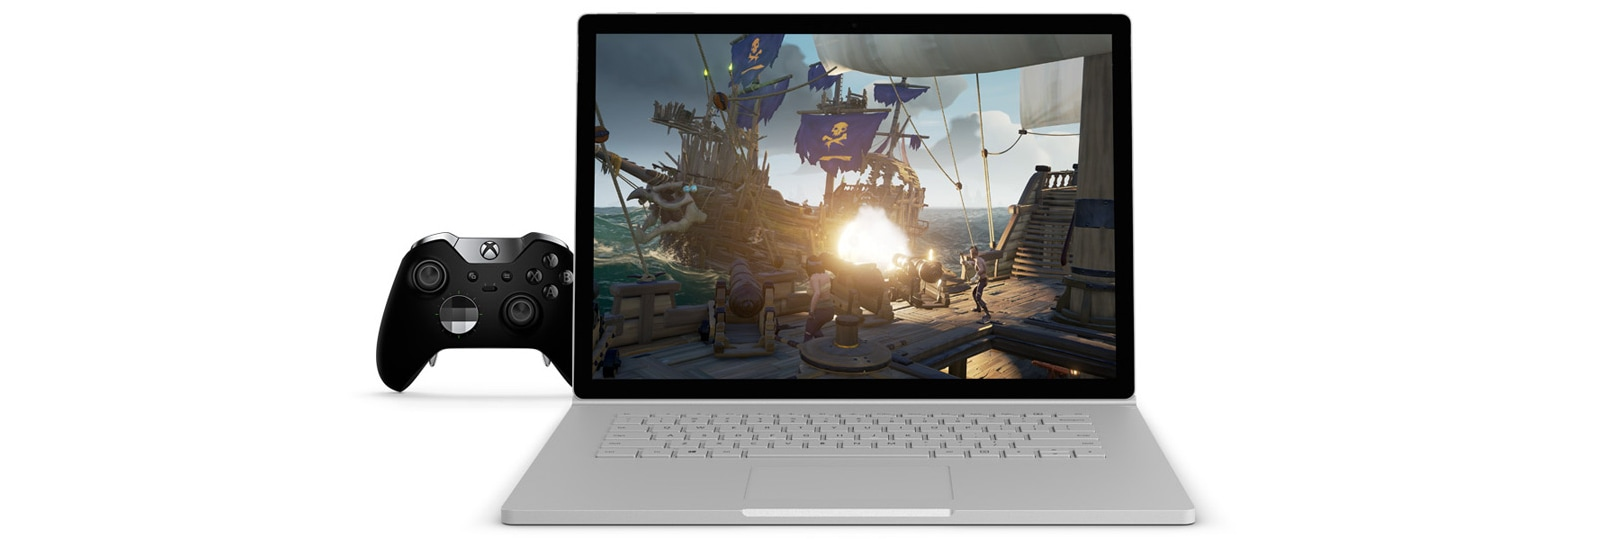 صورة لعبة Sea of Thieves على Surface Book 2 مقاس 15 بوصة محاط بوحدة تحكم Xbox Elite